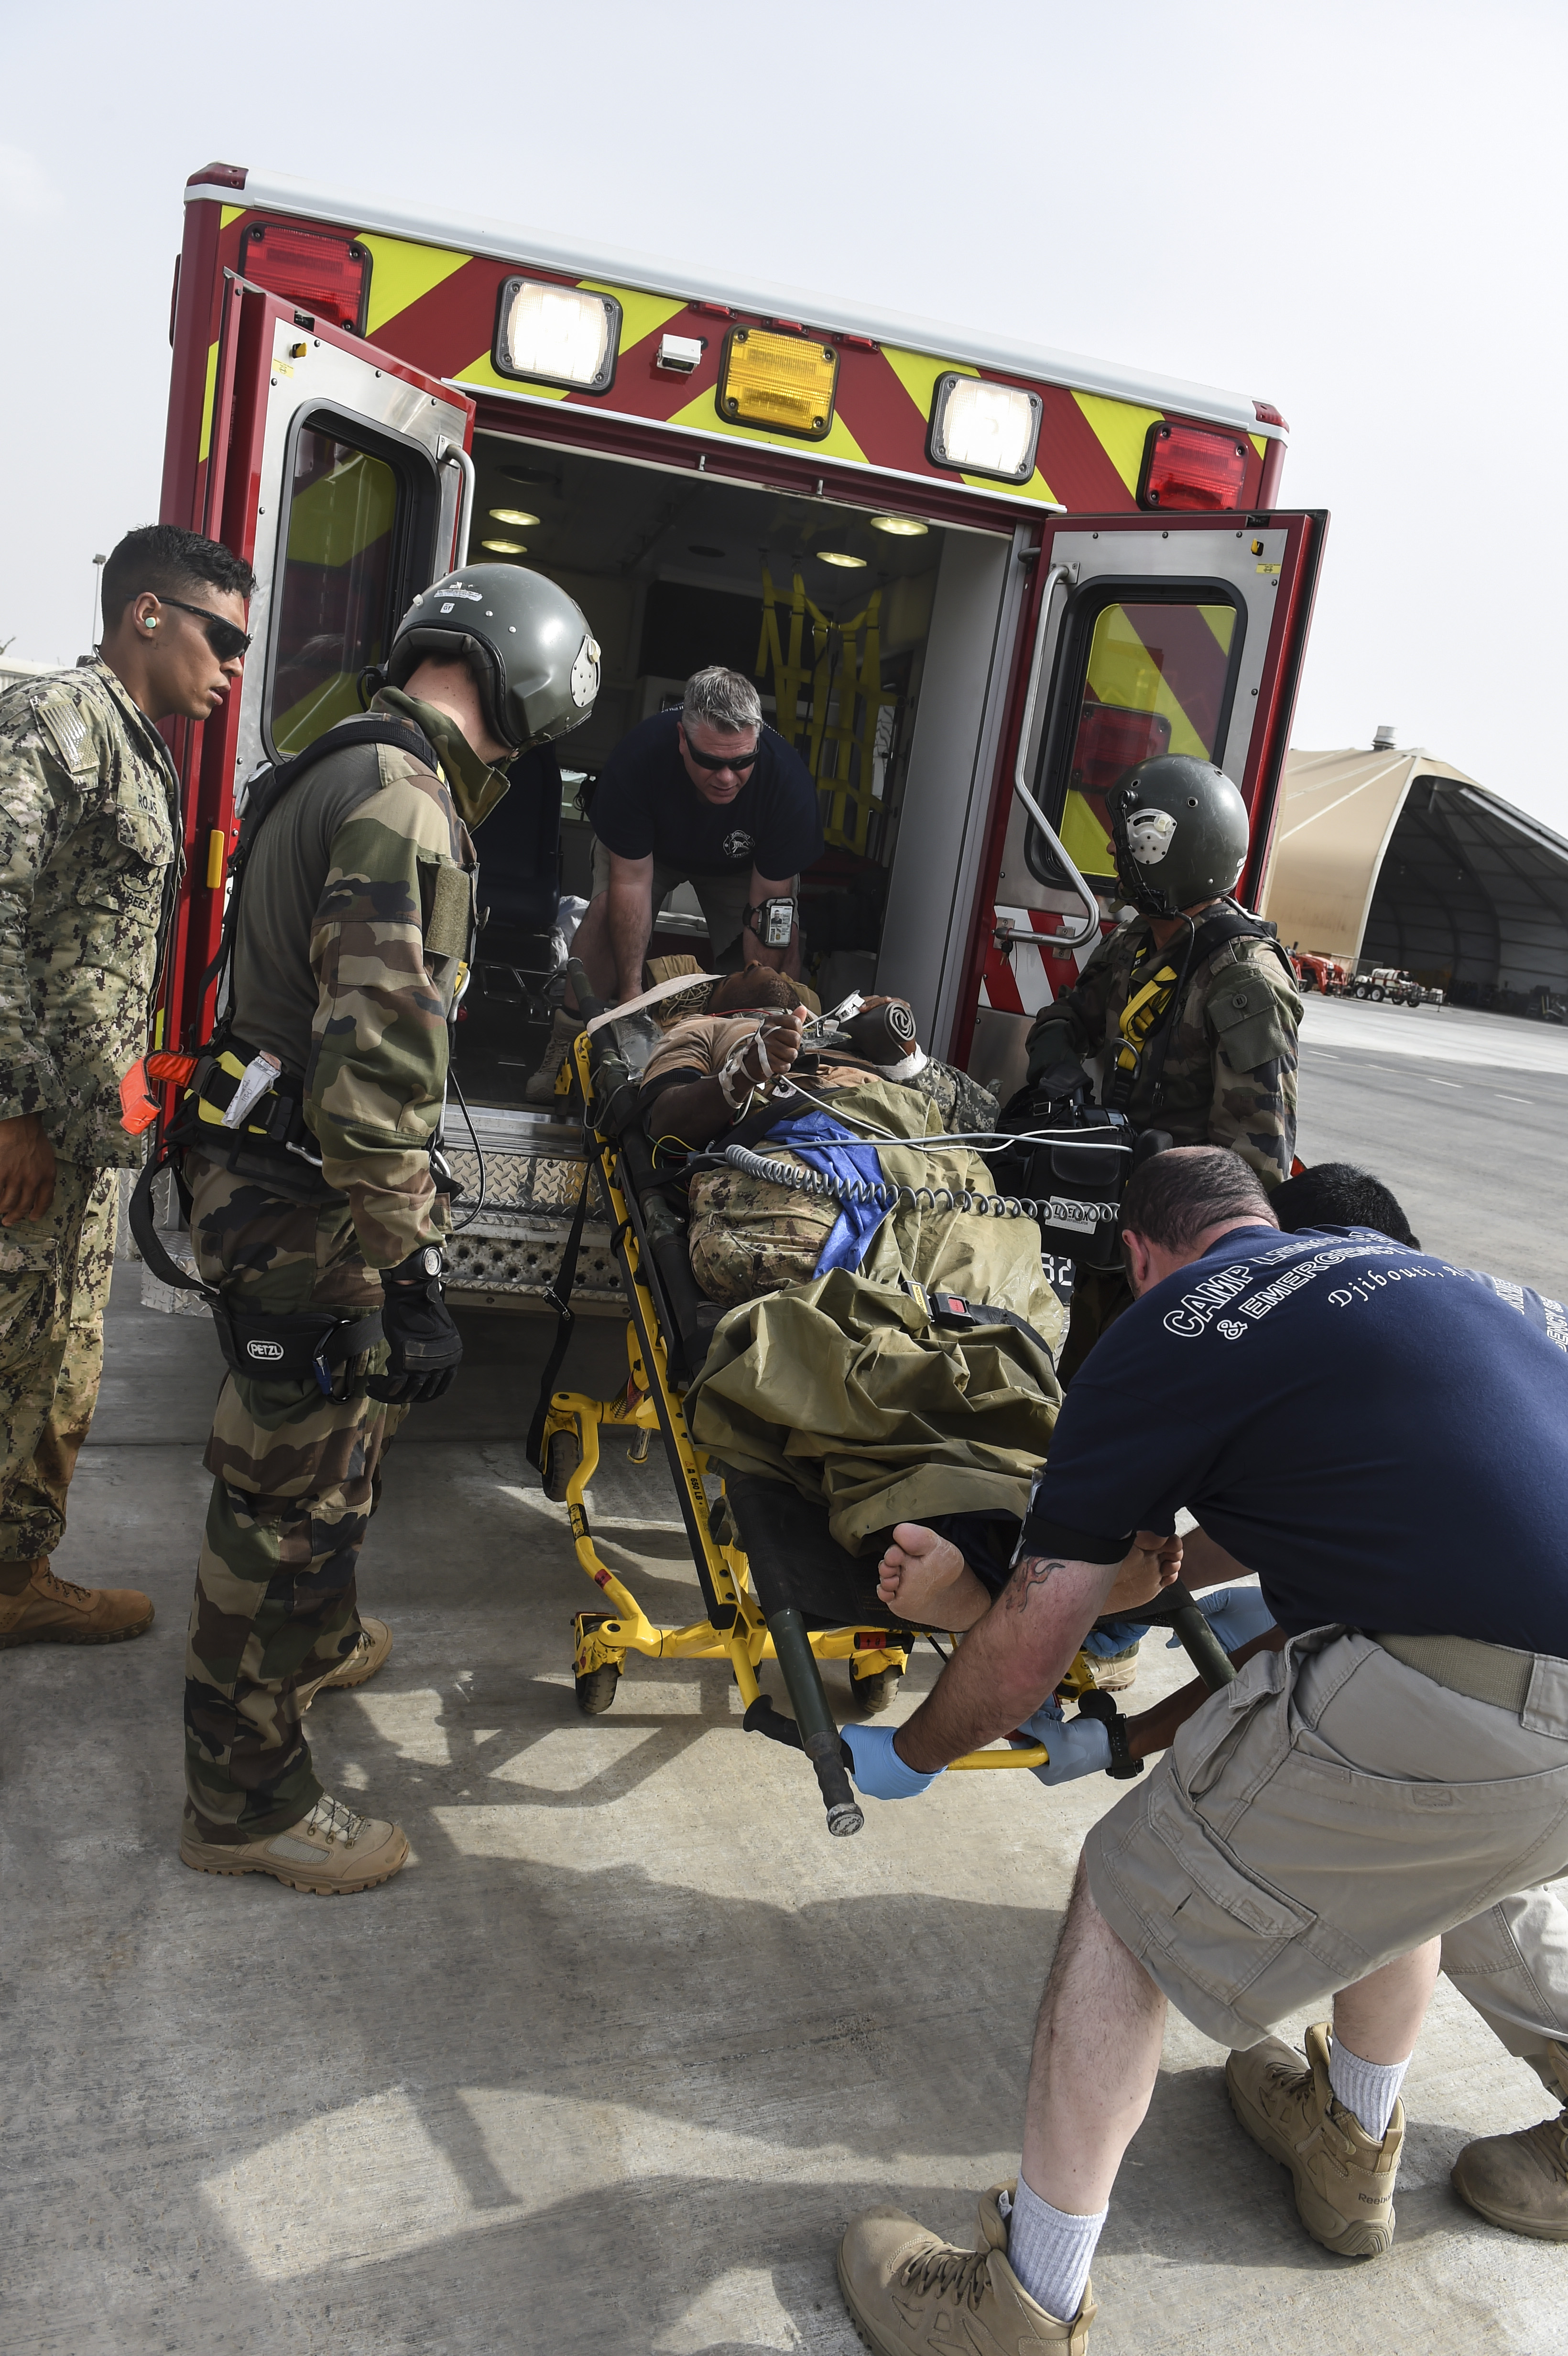 Emergency medical services personnel lift a patient on to an ambulance during a bilateral exercise with the Naval Mobile Construction Battalion One, a maneuver unit of the Combined Joint Task Force-Horn of Africa,  and French forces at Camp Lemonnier, July 20, 2017. CJTF-HOA conducts exercises to maintain readiness and evaluate capability of U.S. and international forces, or to establish/maintain relationships and contribute to capacity building. (U.S. Air Force photo by Staff Sgt. Eboni Prince)